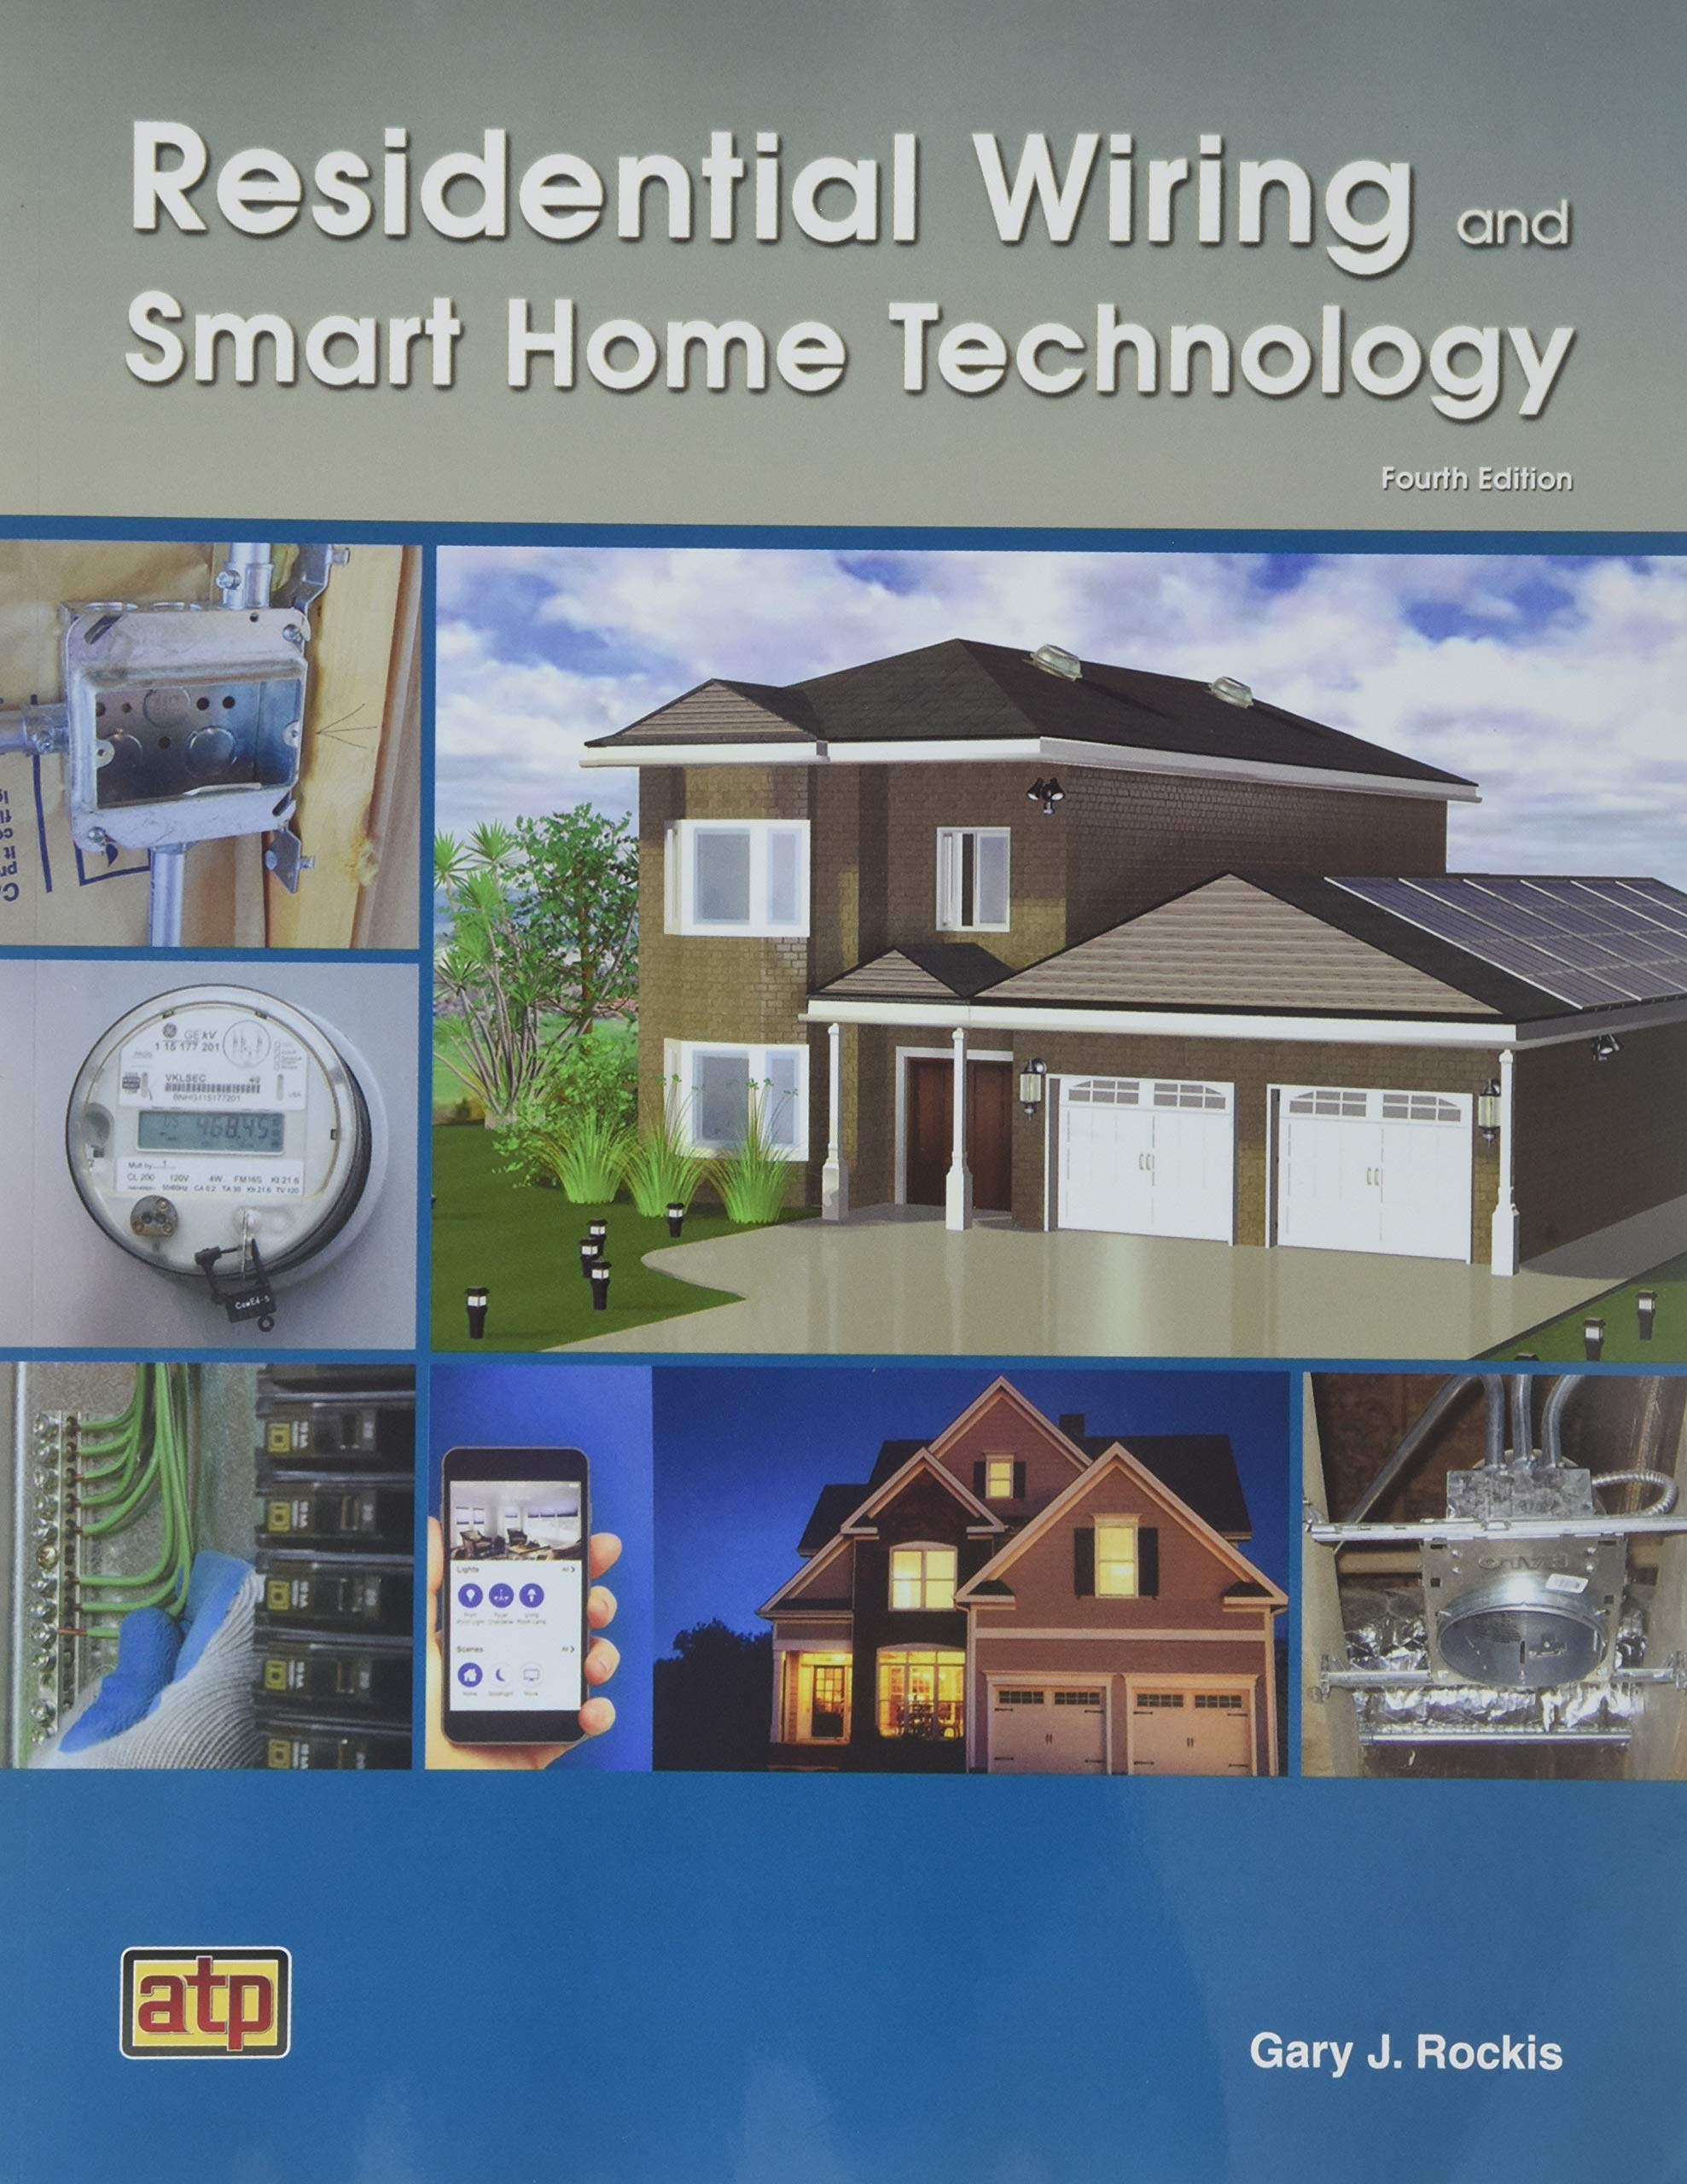 Residential Wiring and Smart Home Technology: Rockis, Gary J., Rockis,  Suzanne M.: 9780826918338: Amazon.com: BooksAmazon.com